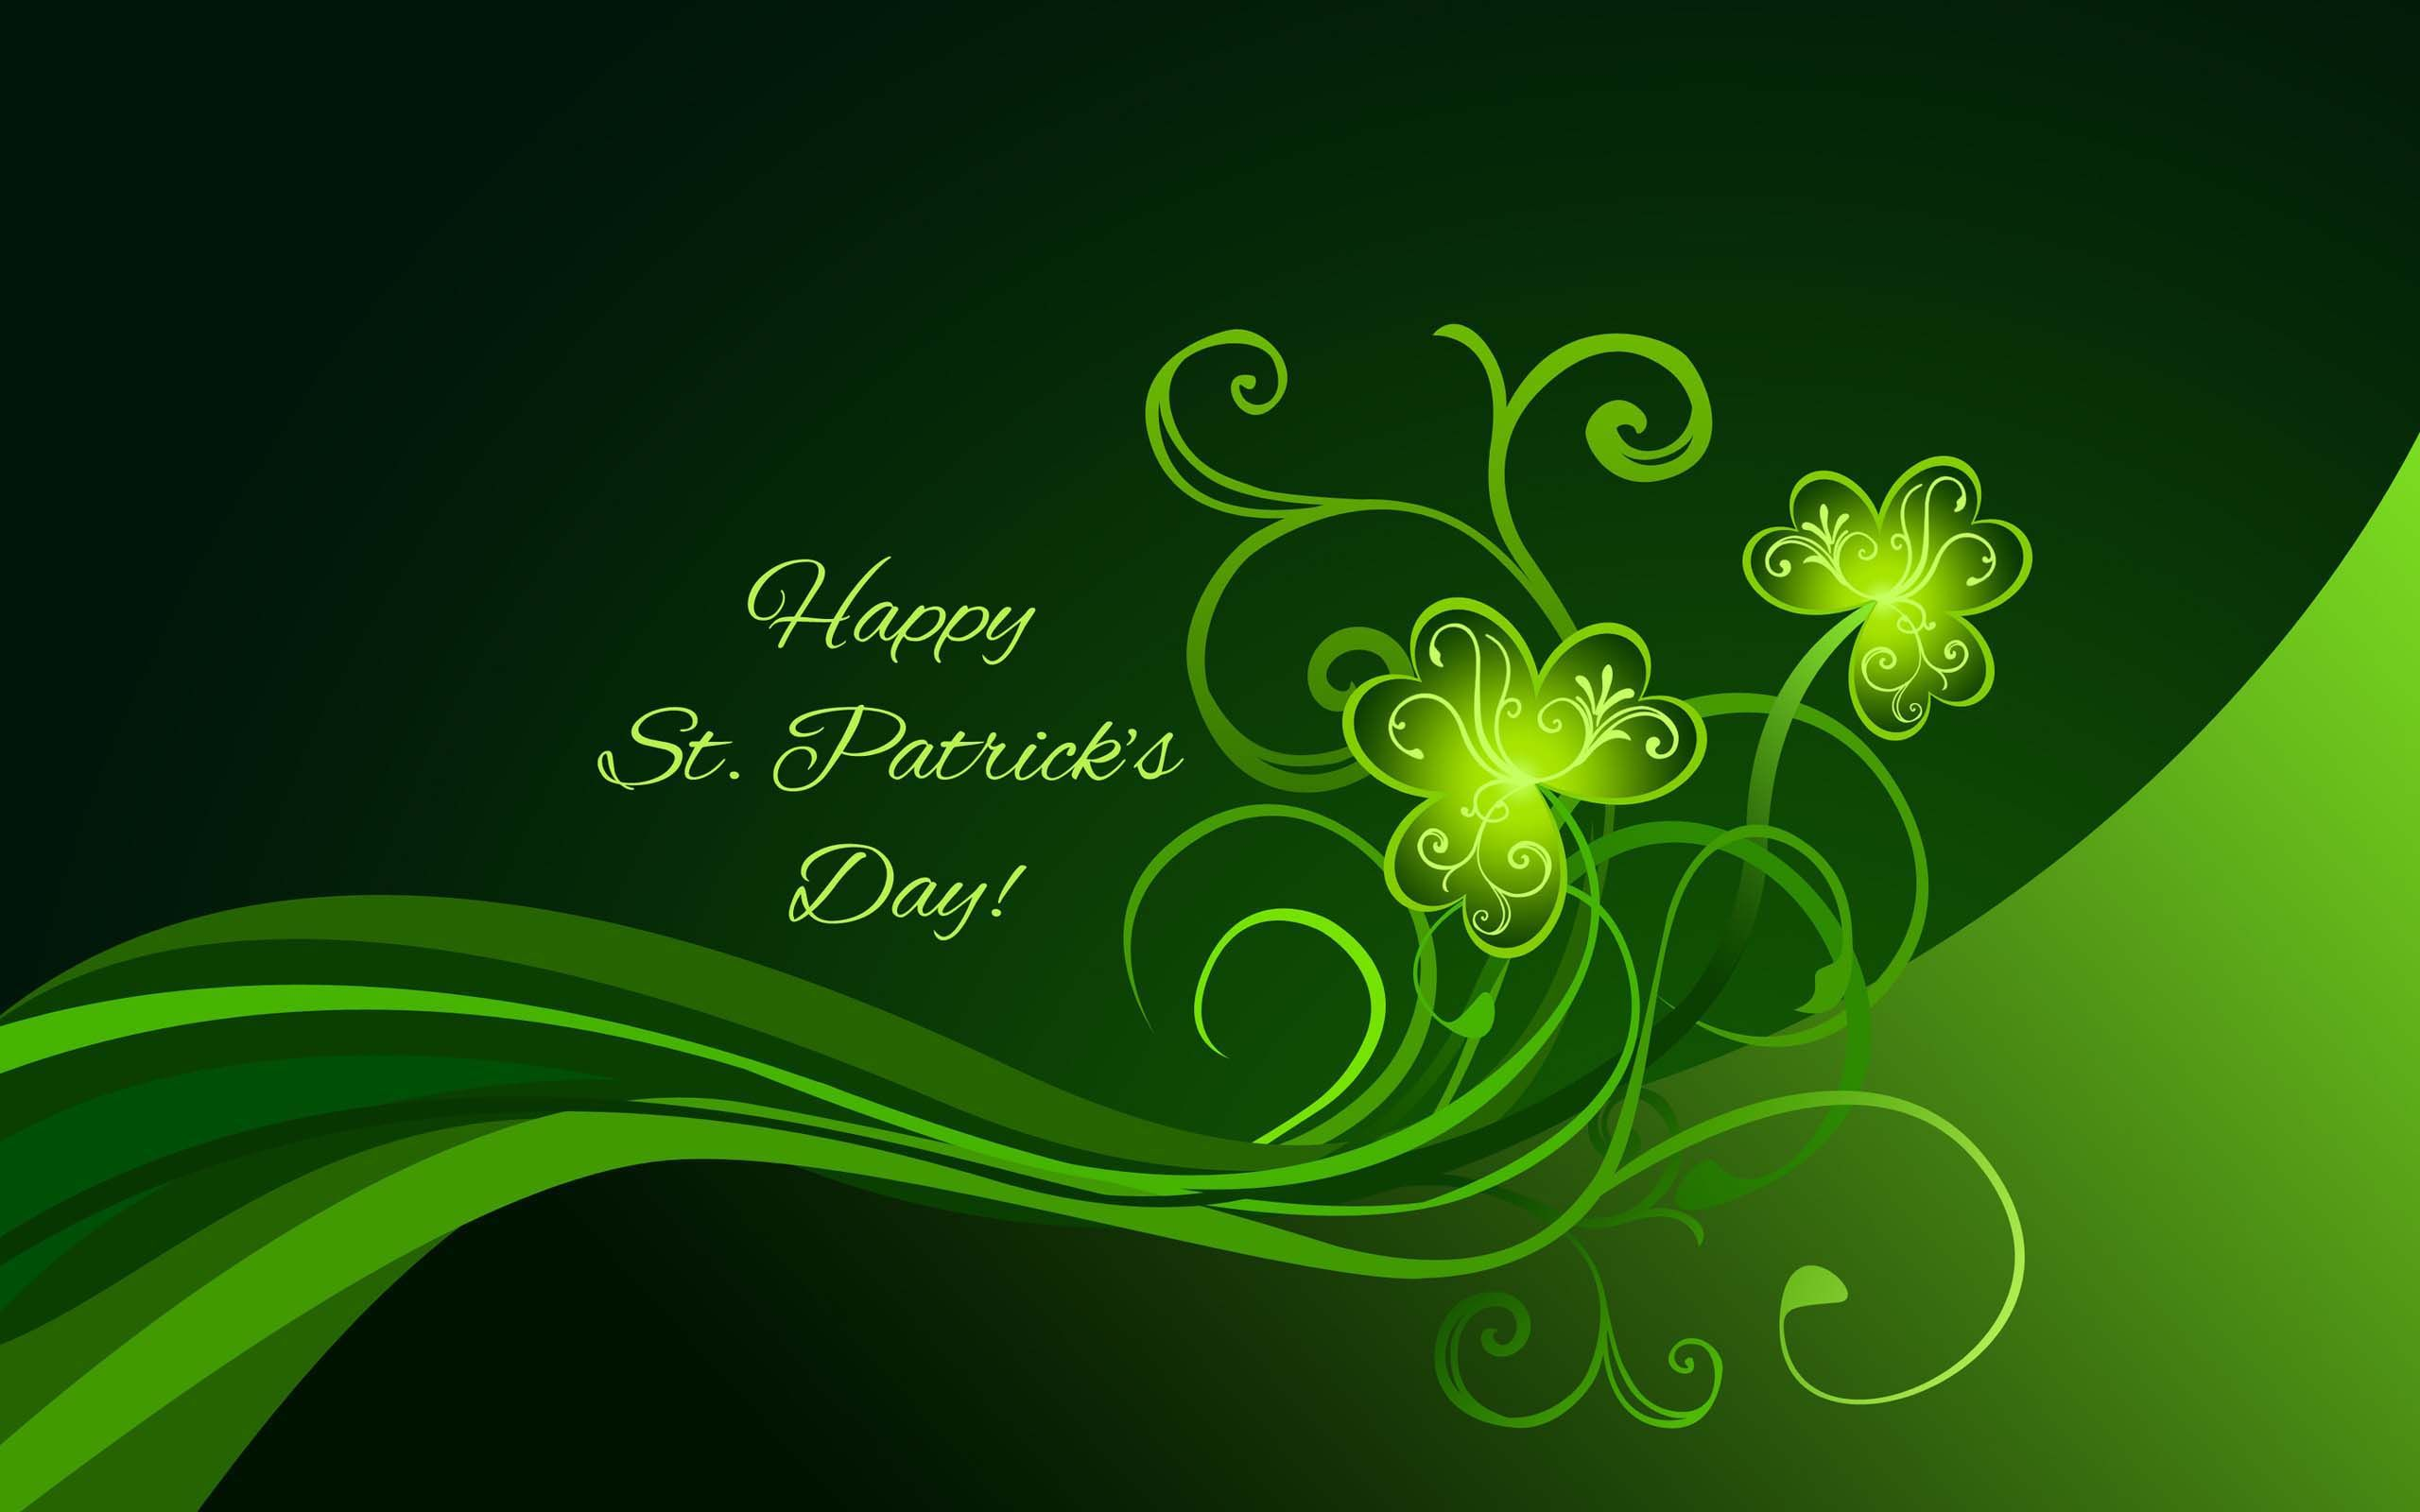 Happy St Patrick S Day Coolwallpaper 2880 1800 St Patricks Day Pictures St Patricks Day Wallpaper St Patricks Day Quotes